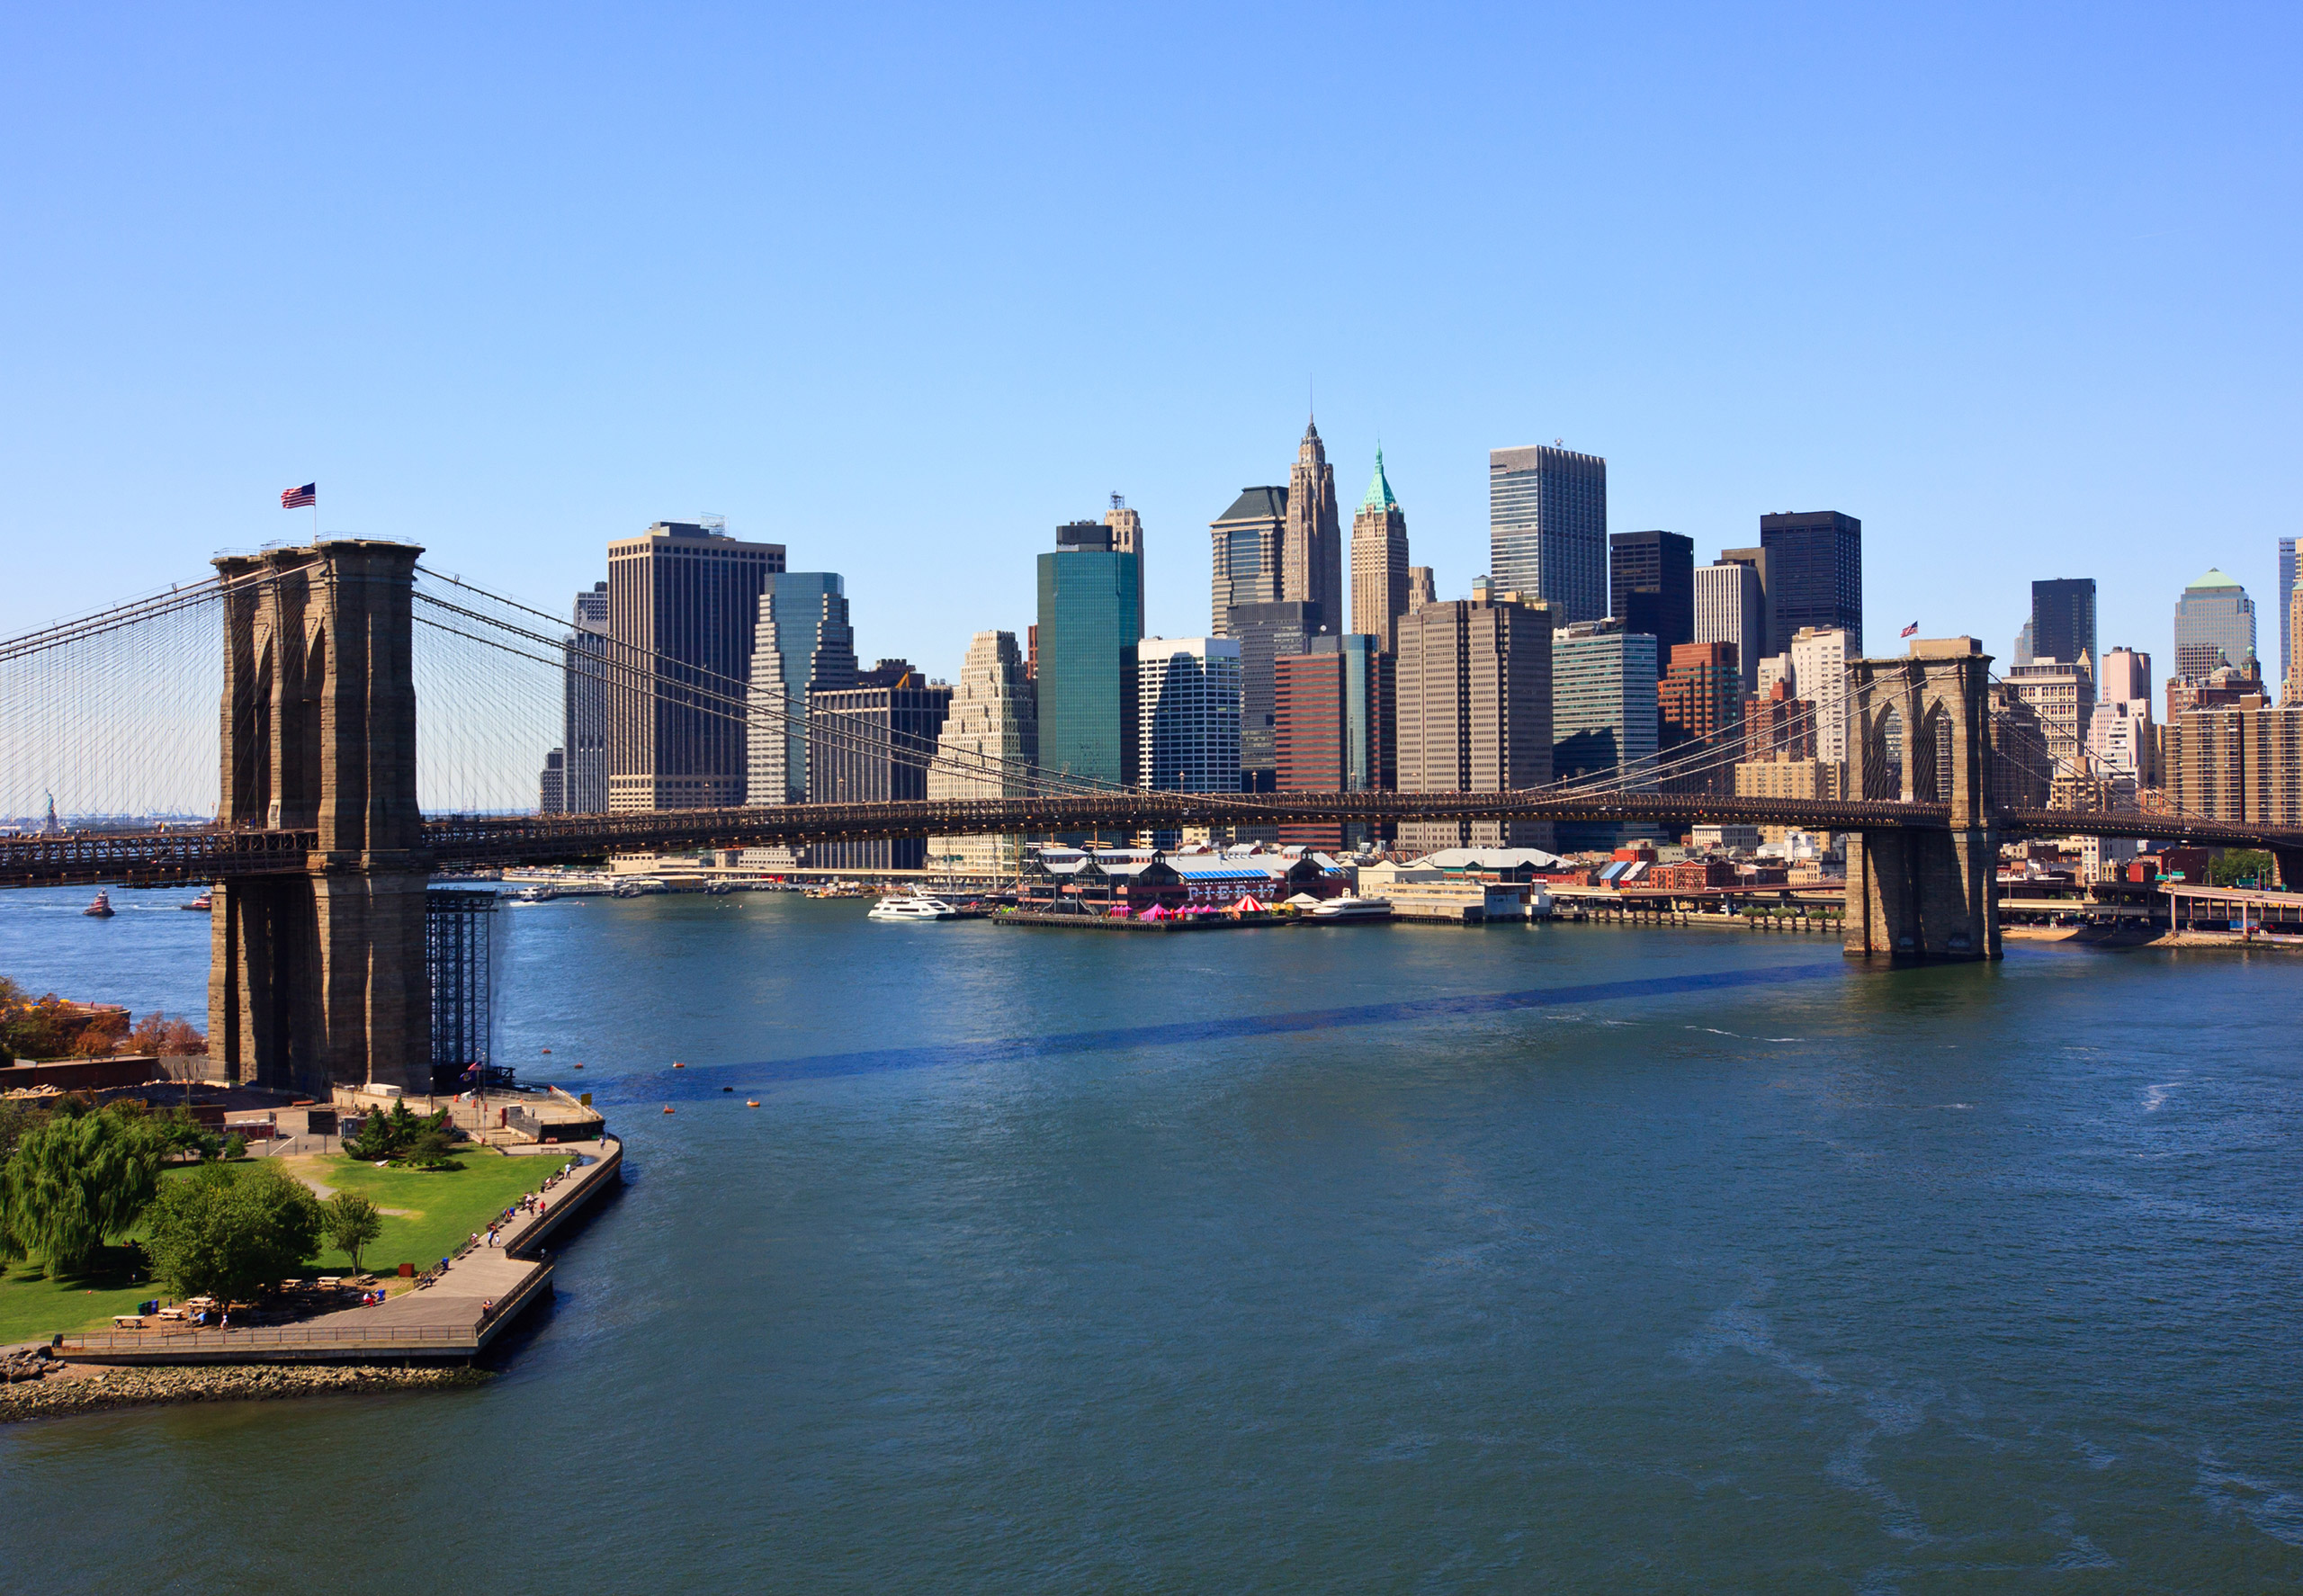 us_nyc_skyline_brooklyn_bridge_b